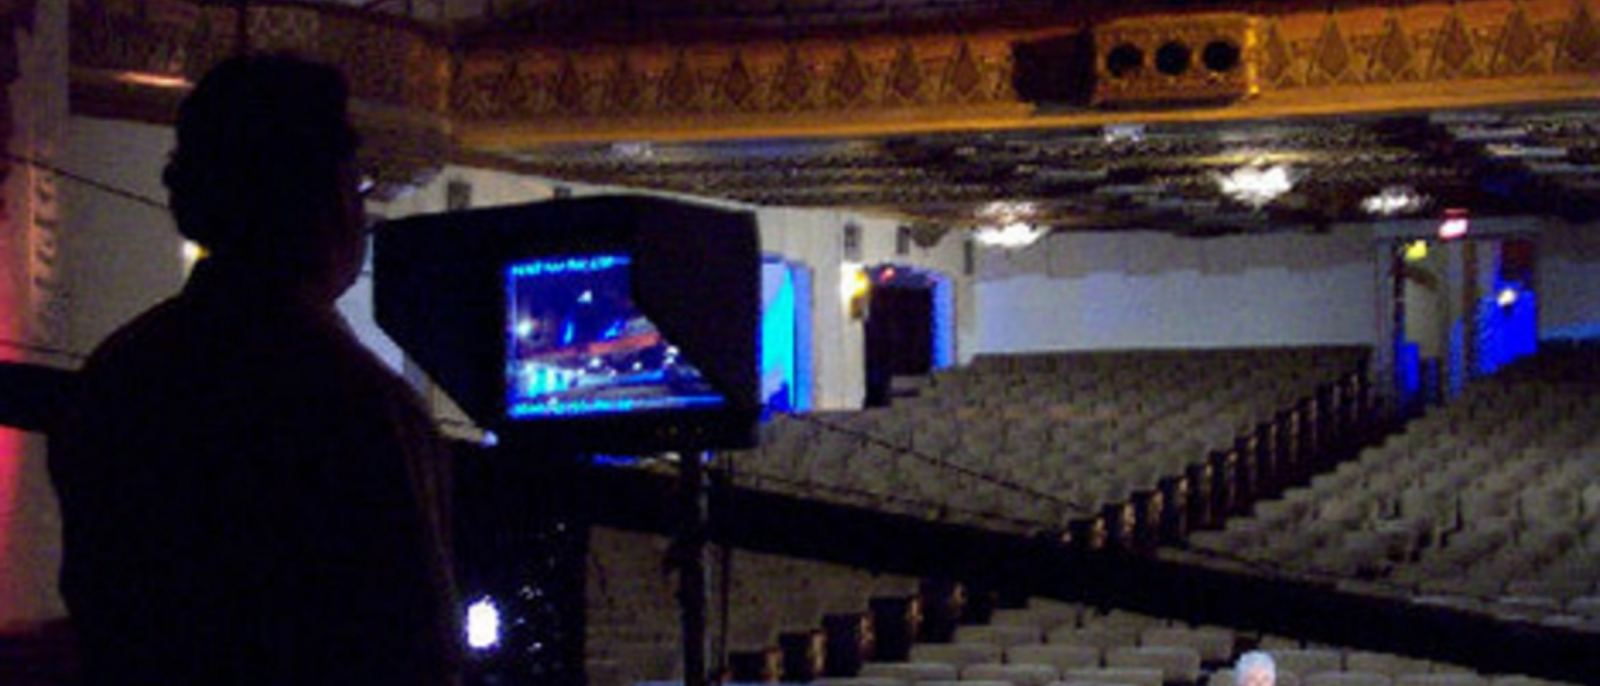 Warner Grand Theatre filming